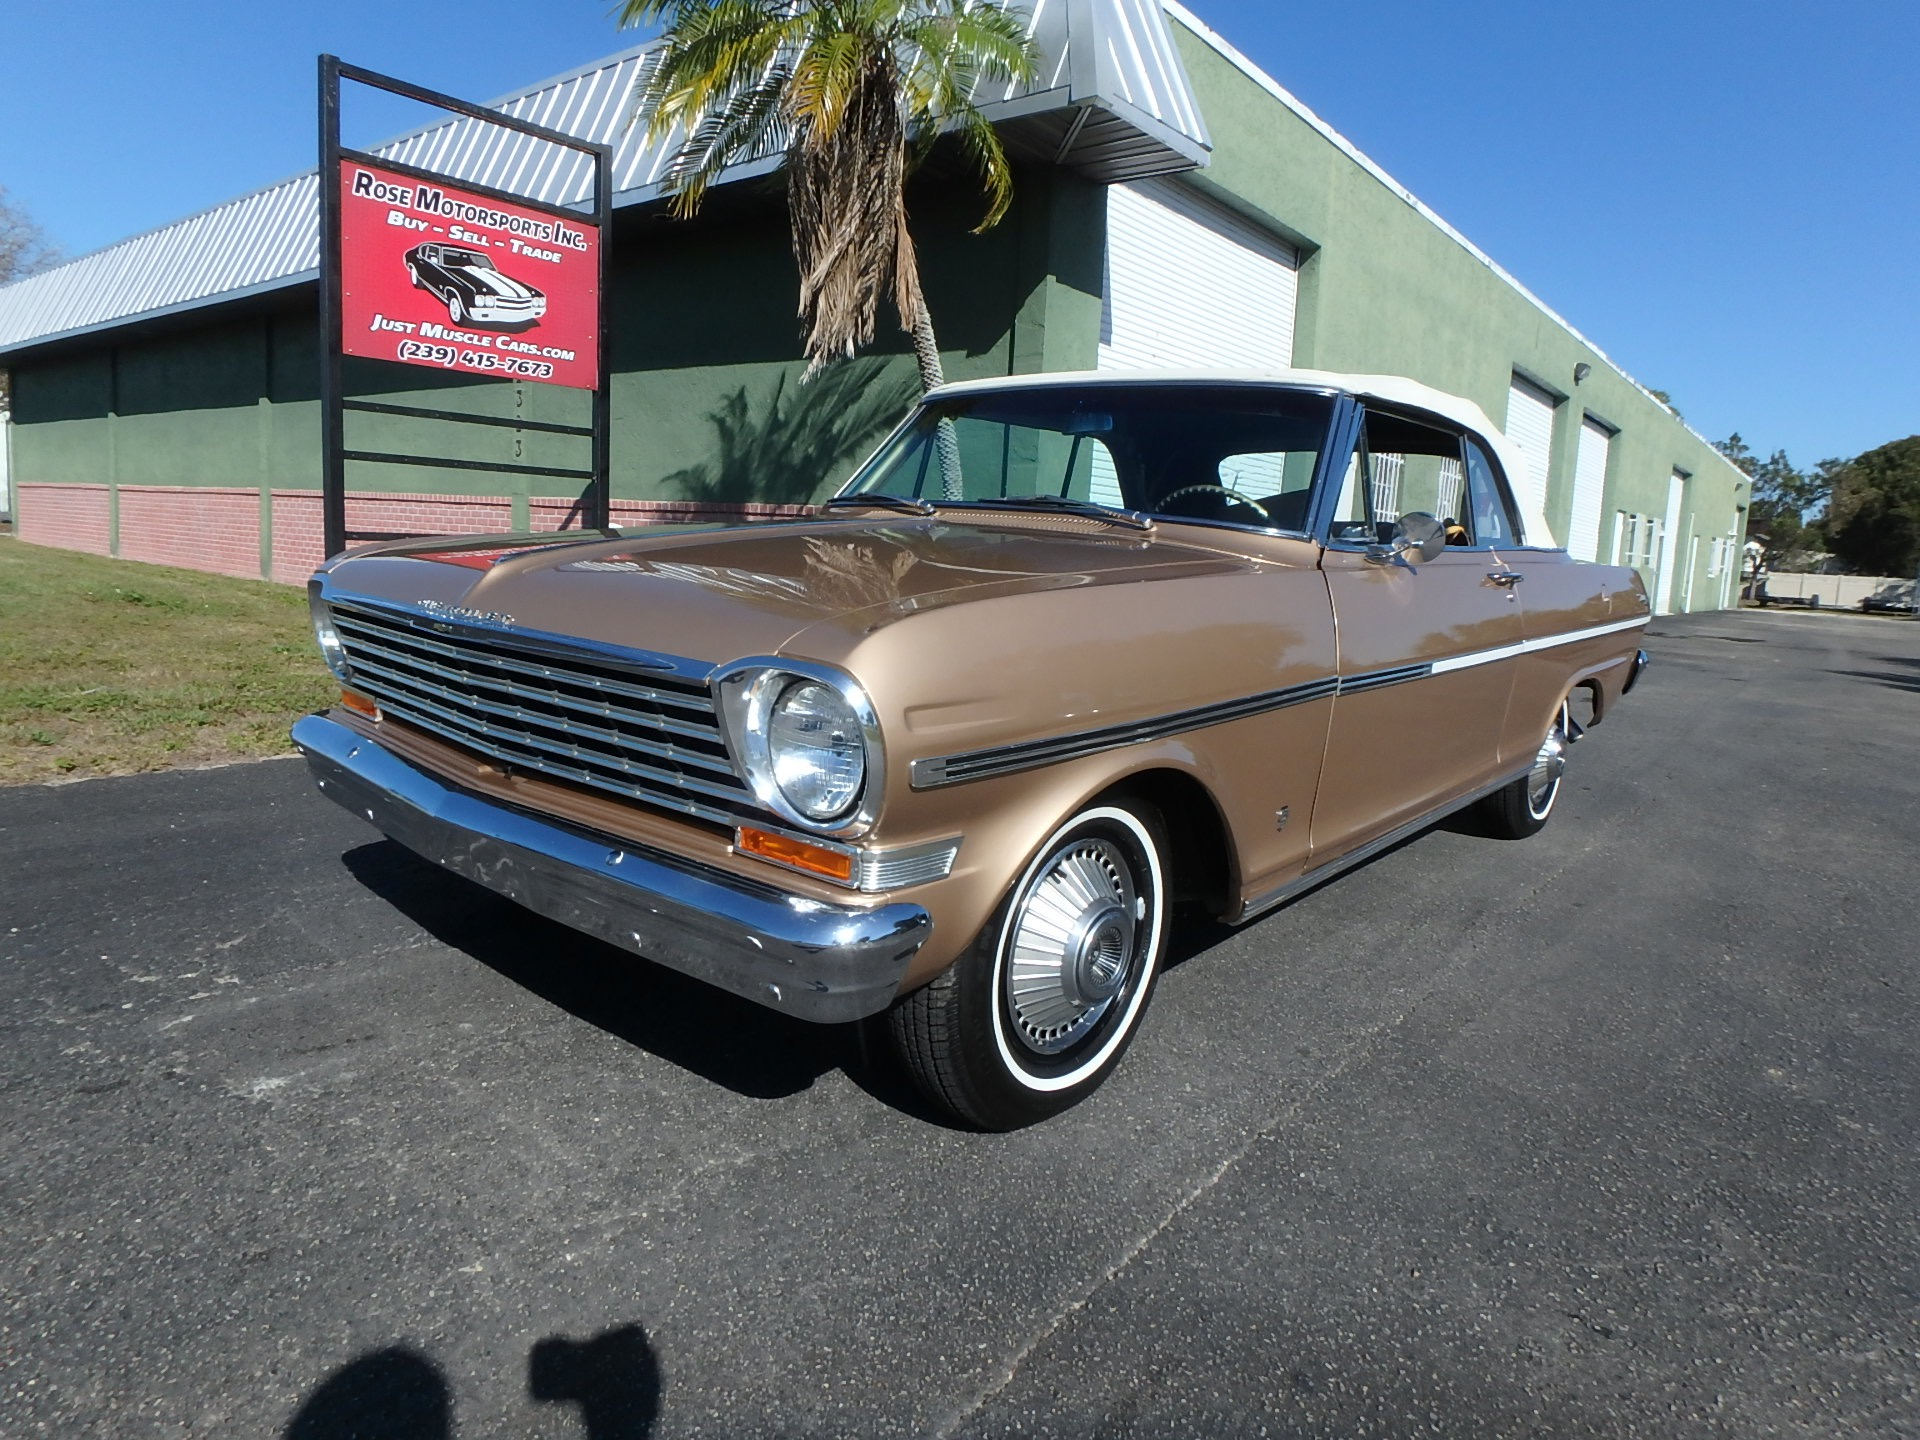 Used 1963 Chevy II Nova Convertible